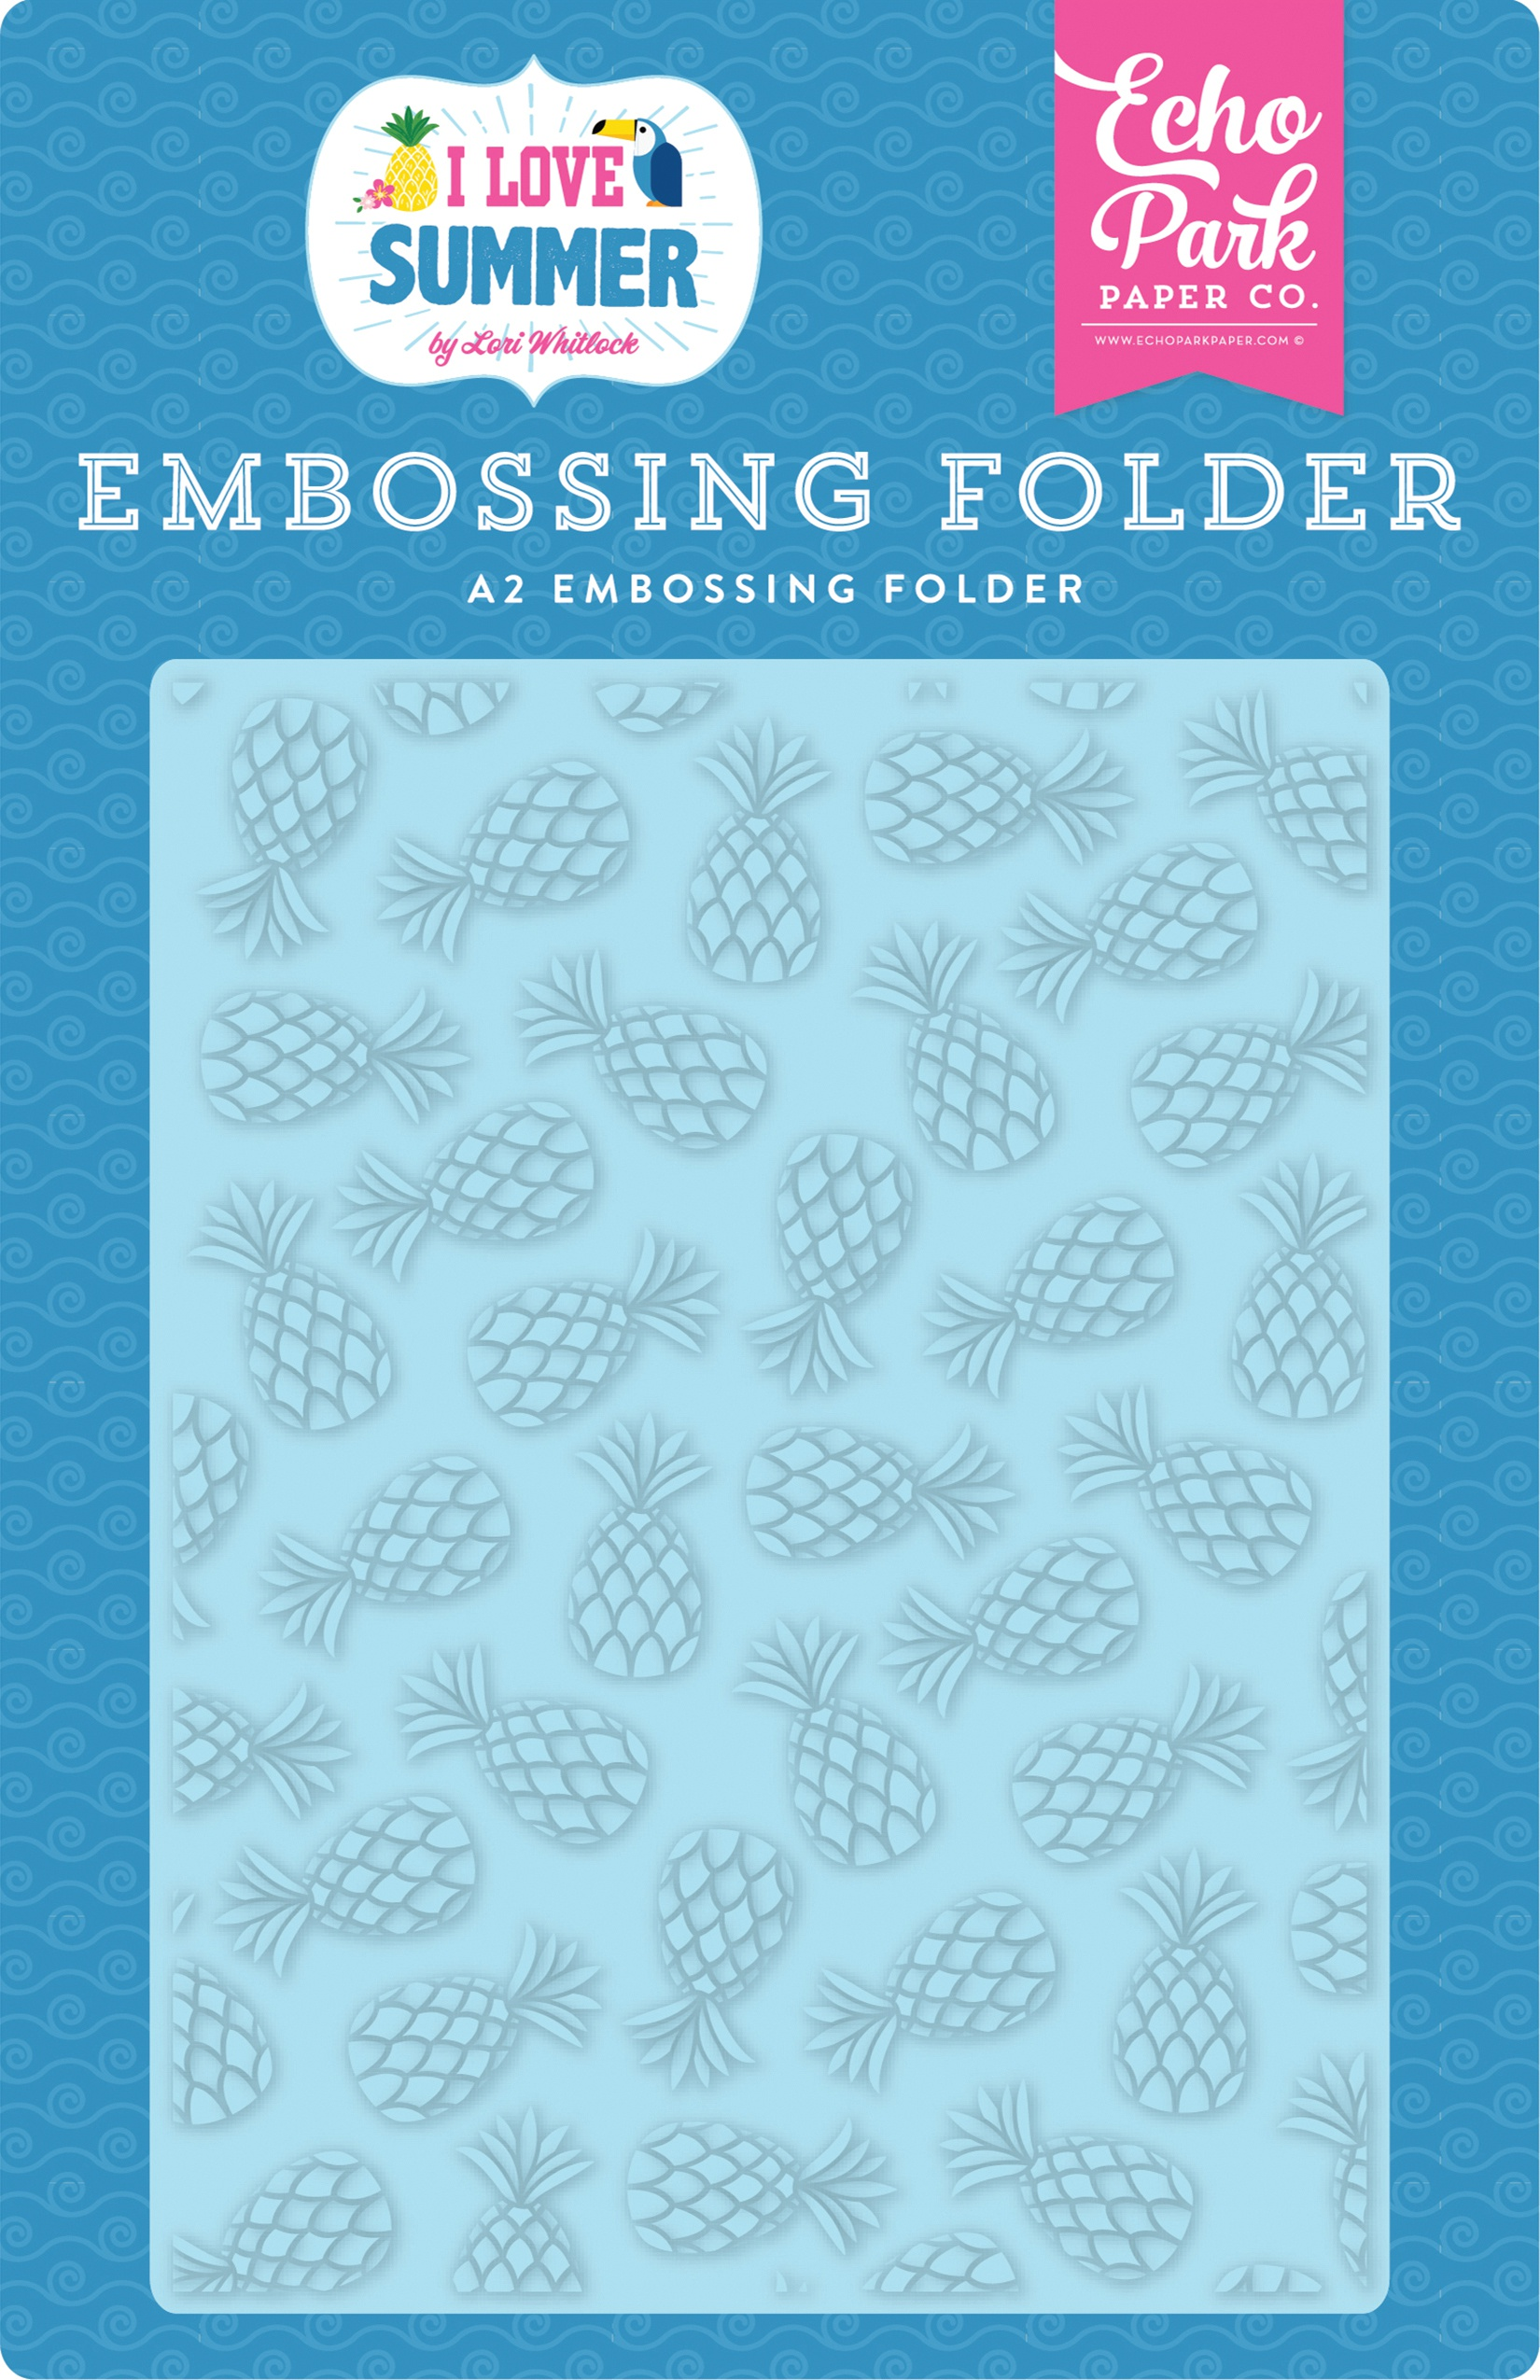 Echo Park Embossing Folder A2-Summer Pineapples